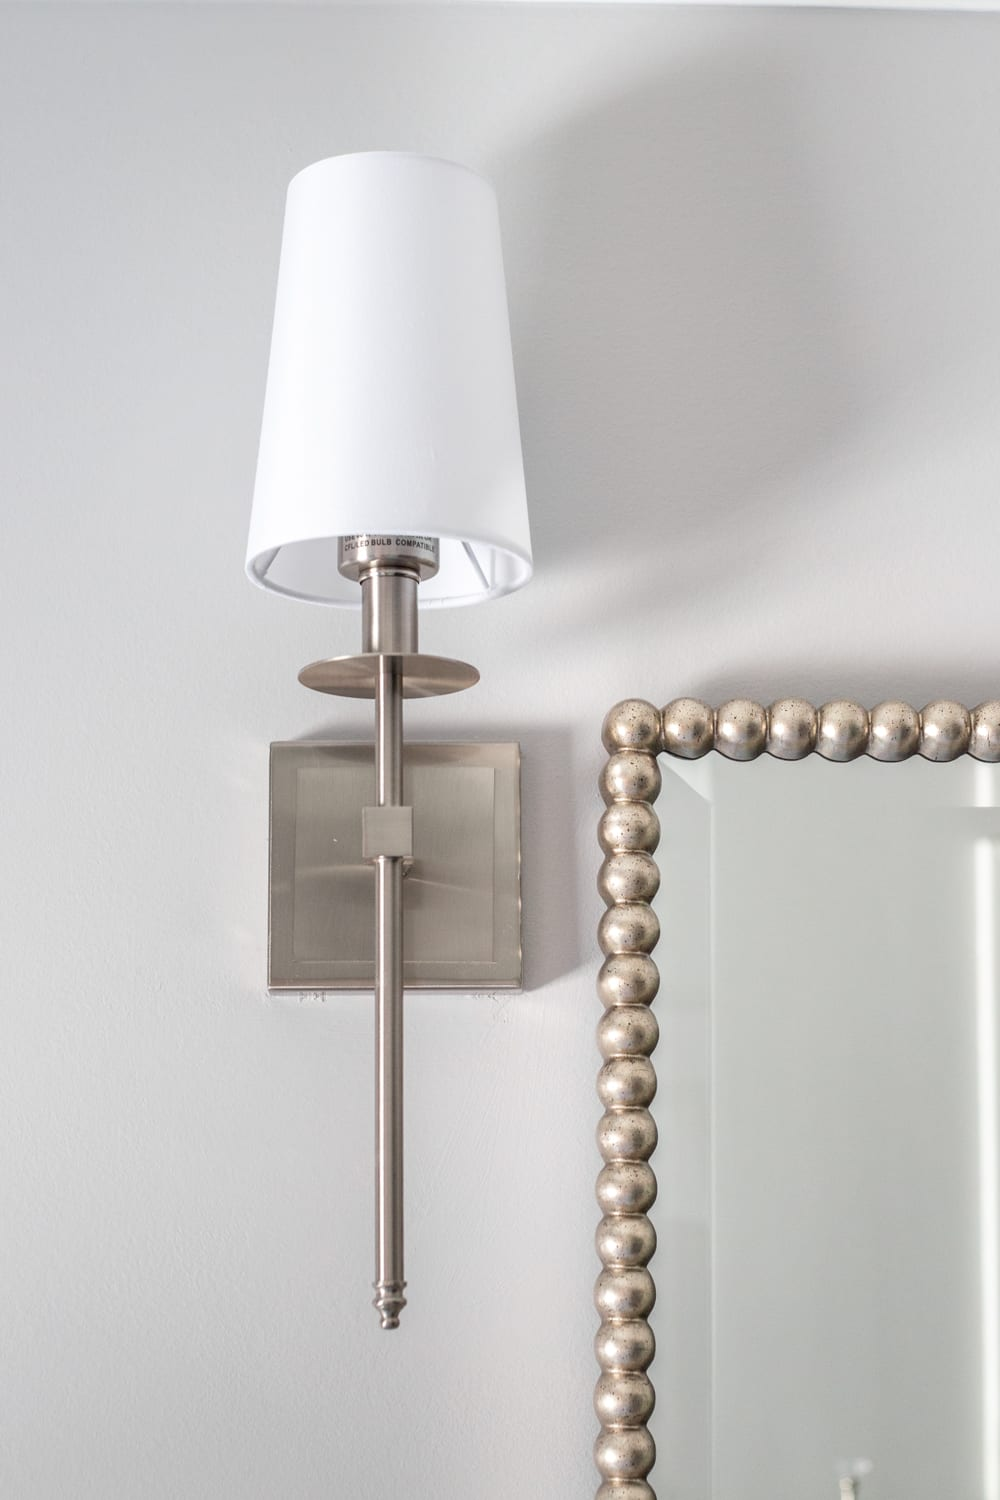 Girls' Bathroom Decor Details & Sources | traditional style shaded sconce